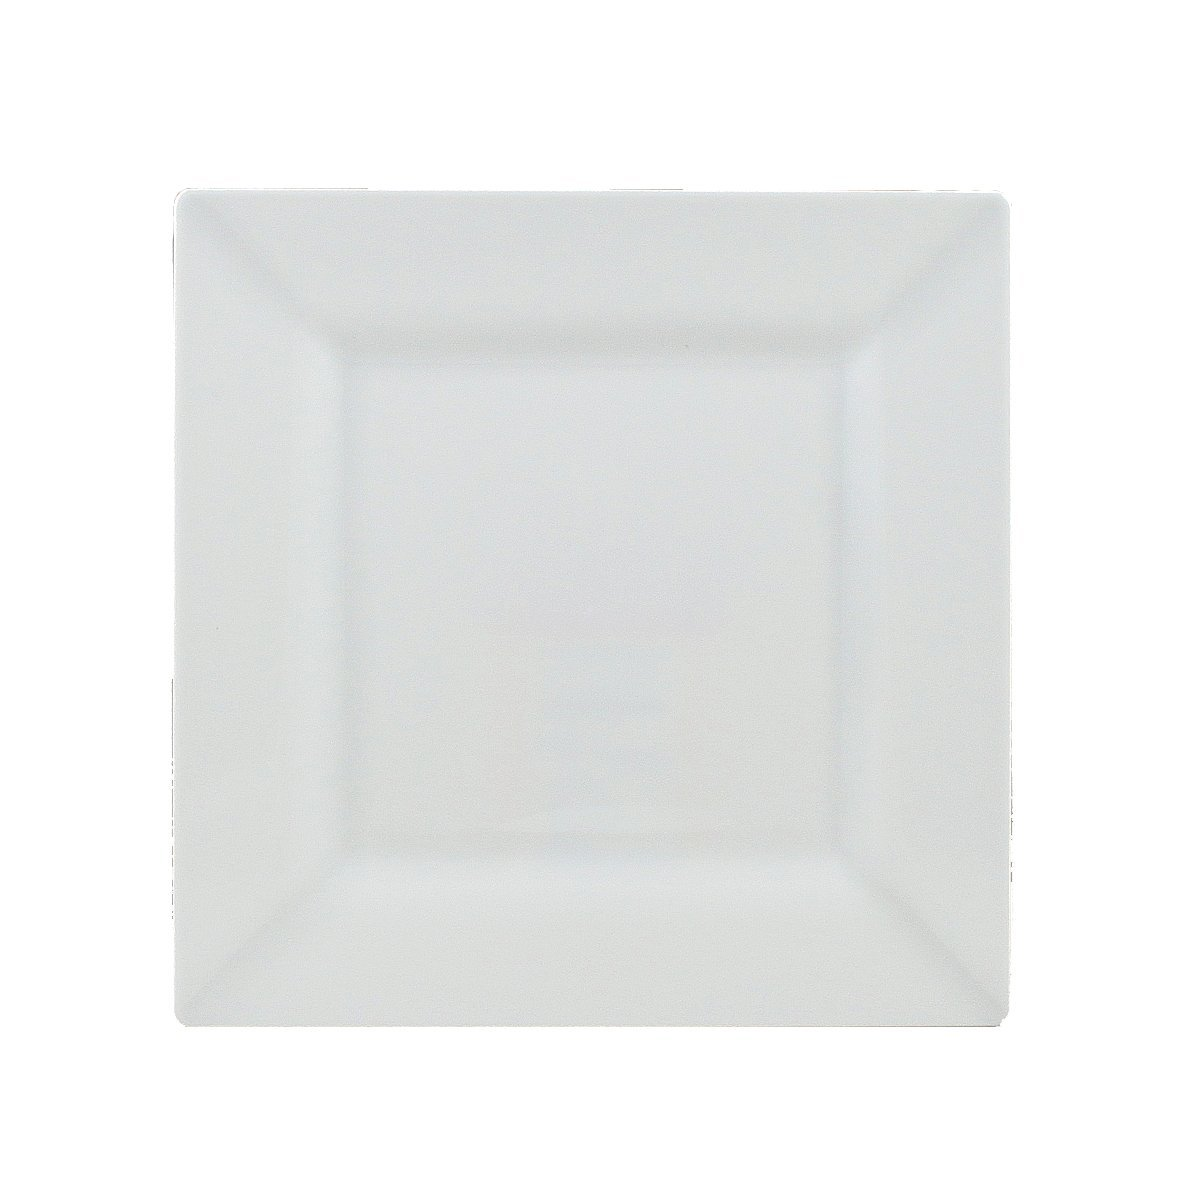 Maryland Plastics 10 Count Simply Squared Square Dessert Plates, 6-1/2